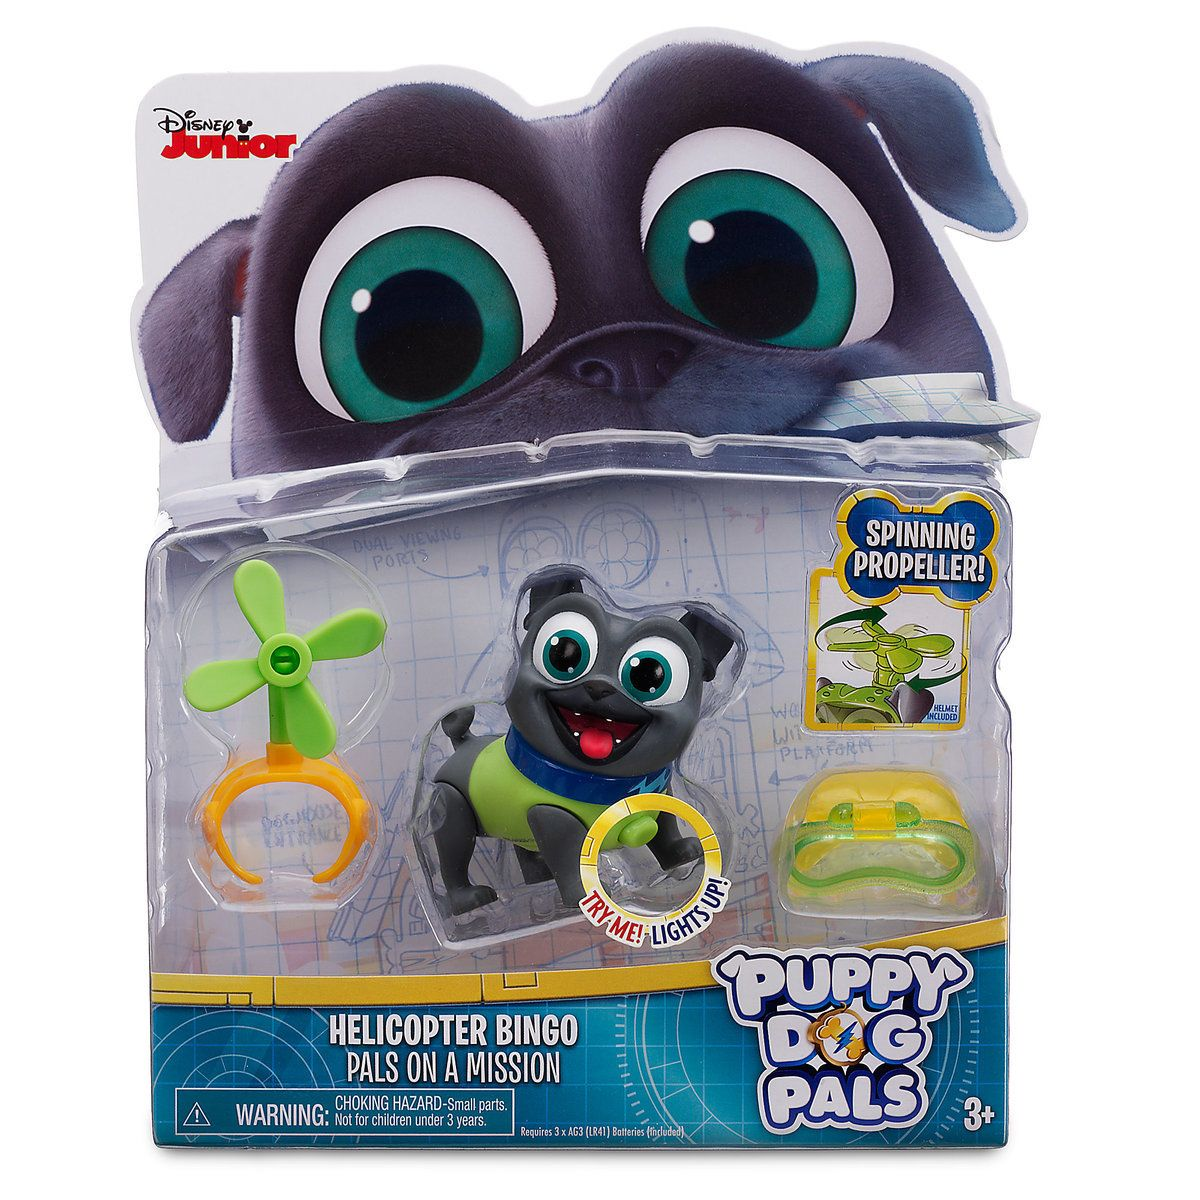 Bingo Pals On A Mission Toy Puppy Dog Pals Dogs And Puppies Toy Puppies Ukulele Design